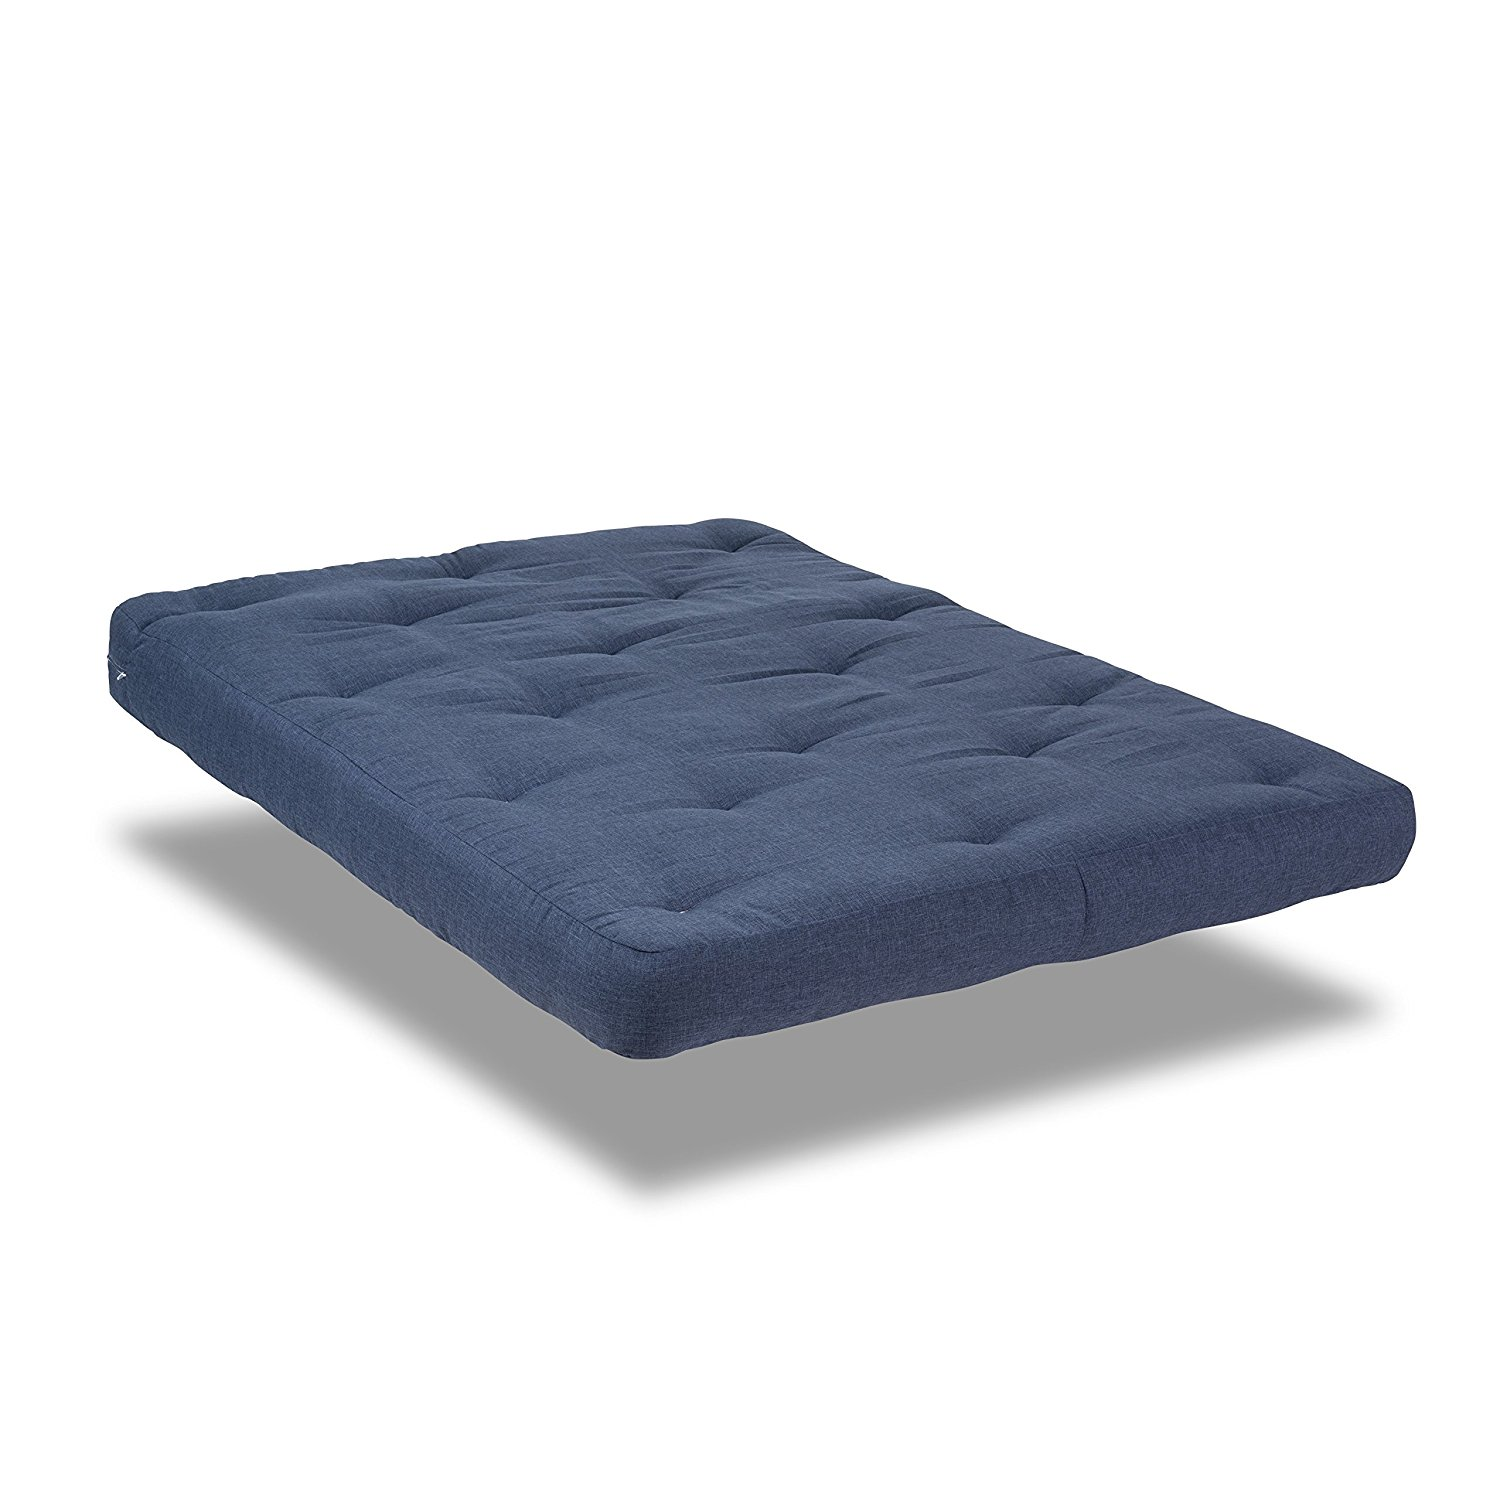 Serta Willow Double Sided Visco, Memory Foam Futon Mattress, Full, Cobalt Blue, Made in the USA